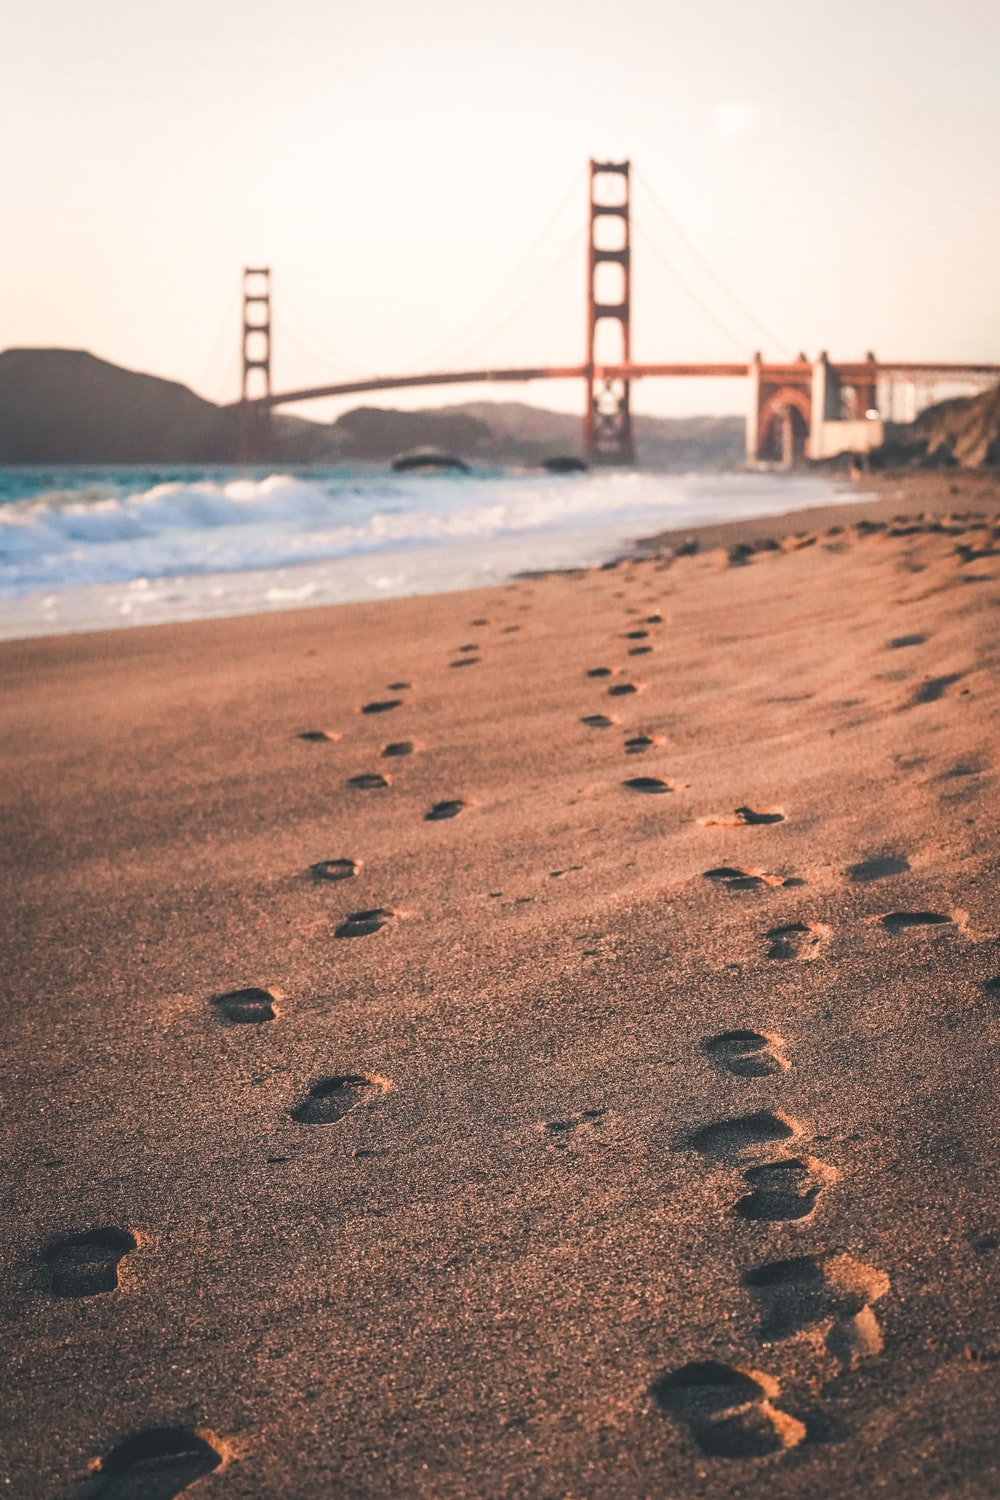 footprints on sand near Golden Gate Bridge